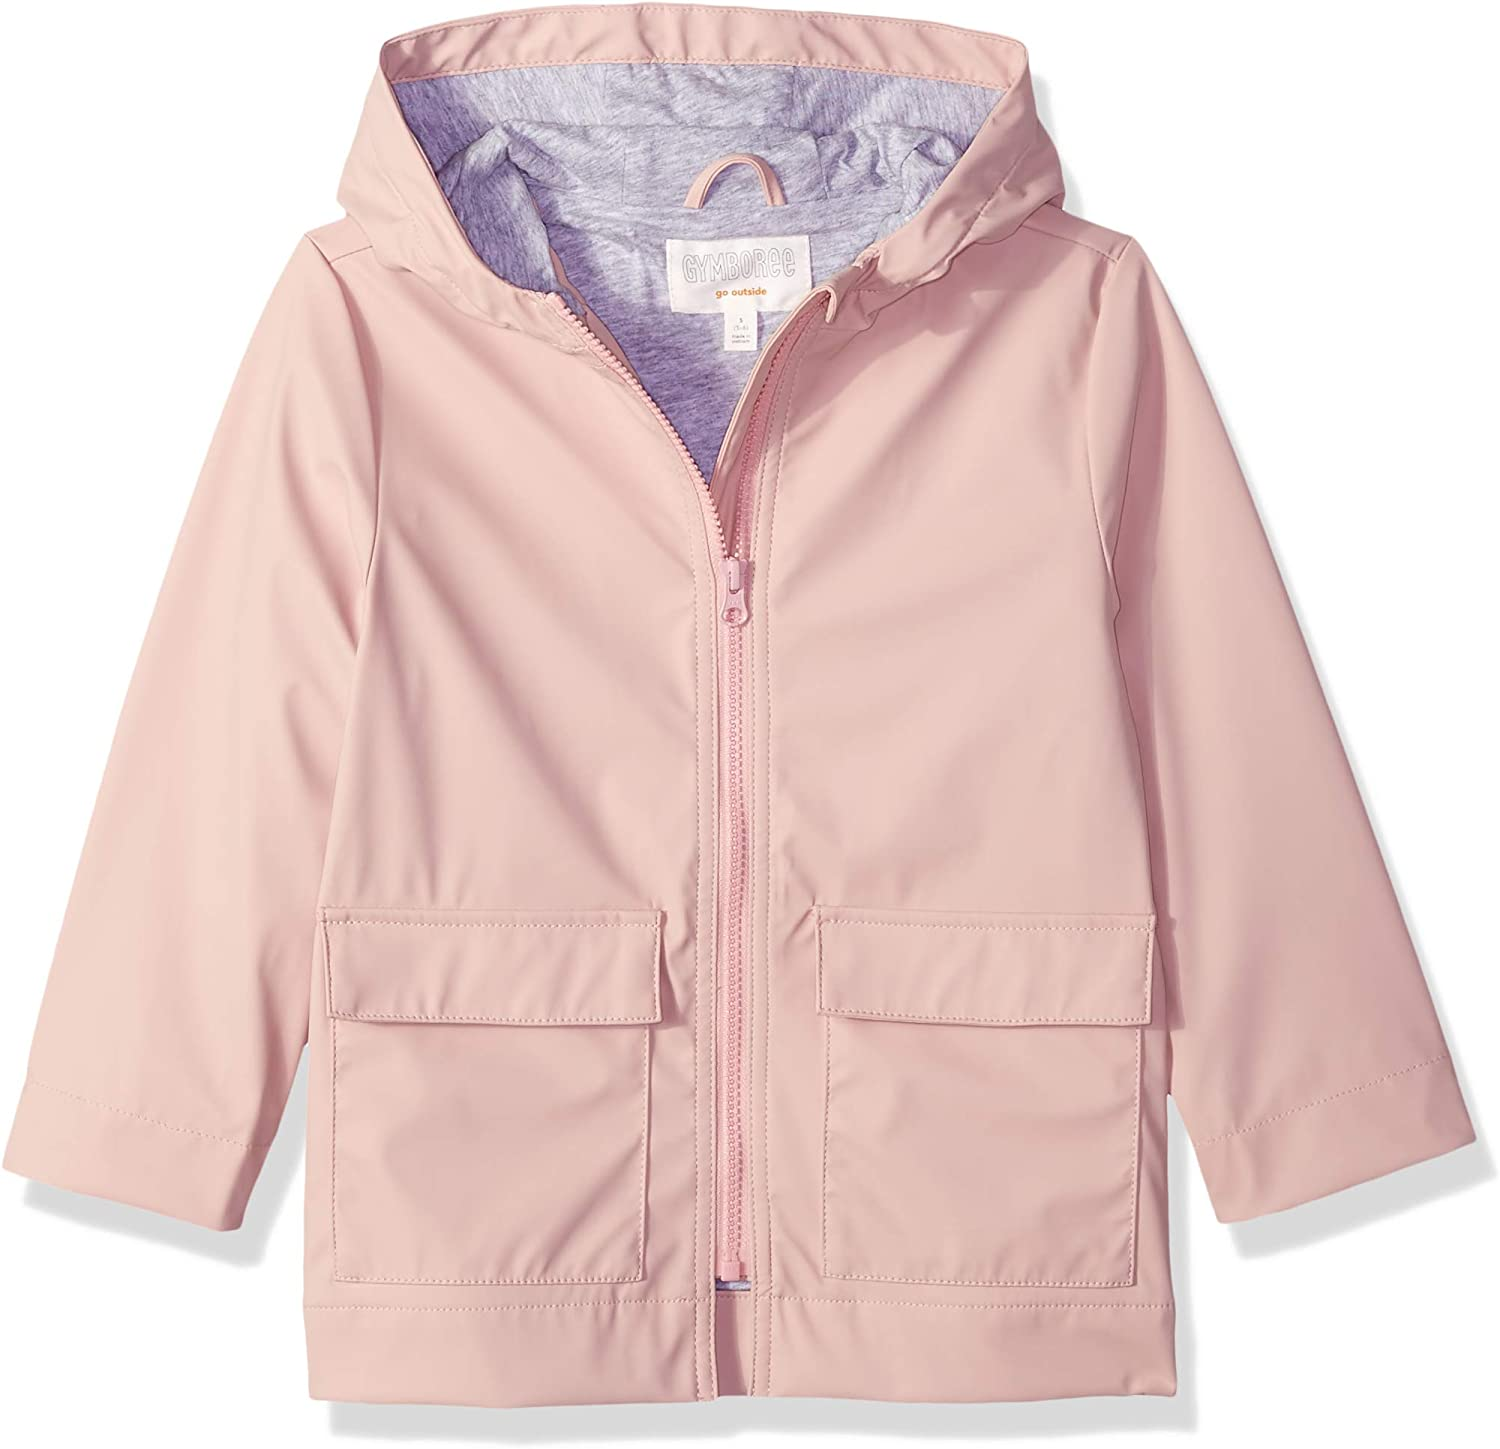 Gymboree Girls' Big Woven Rain Jacket